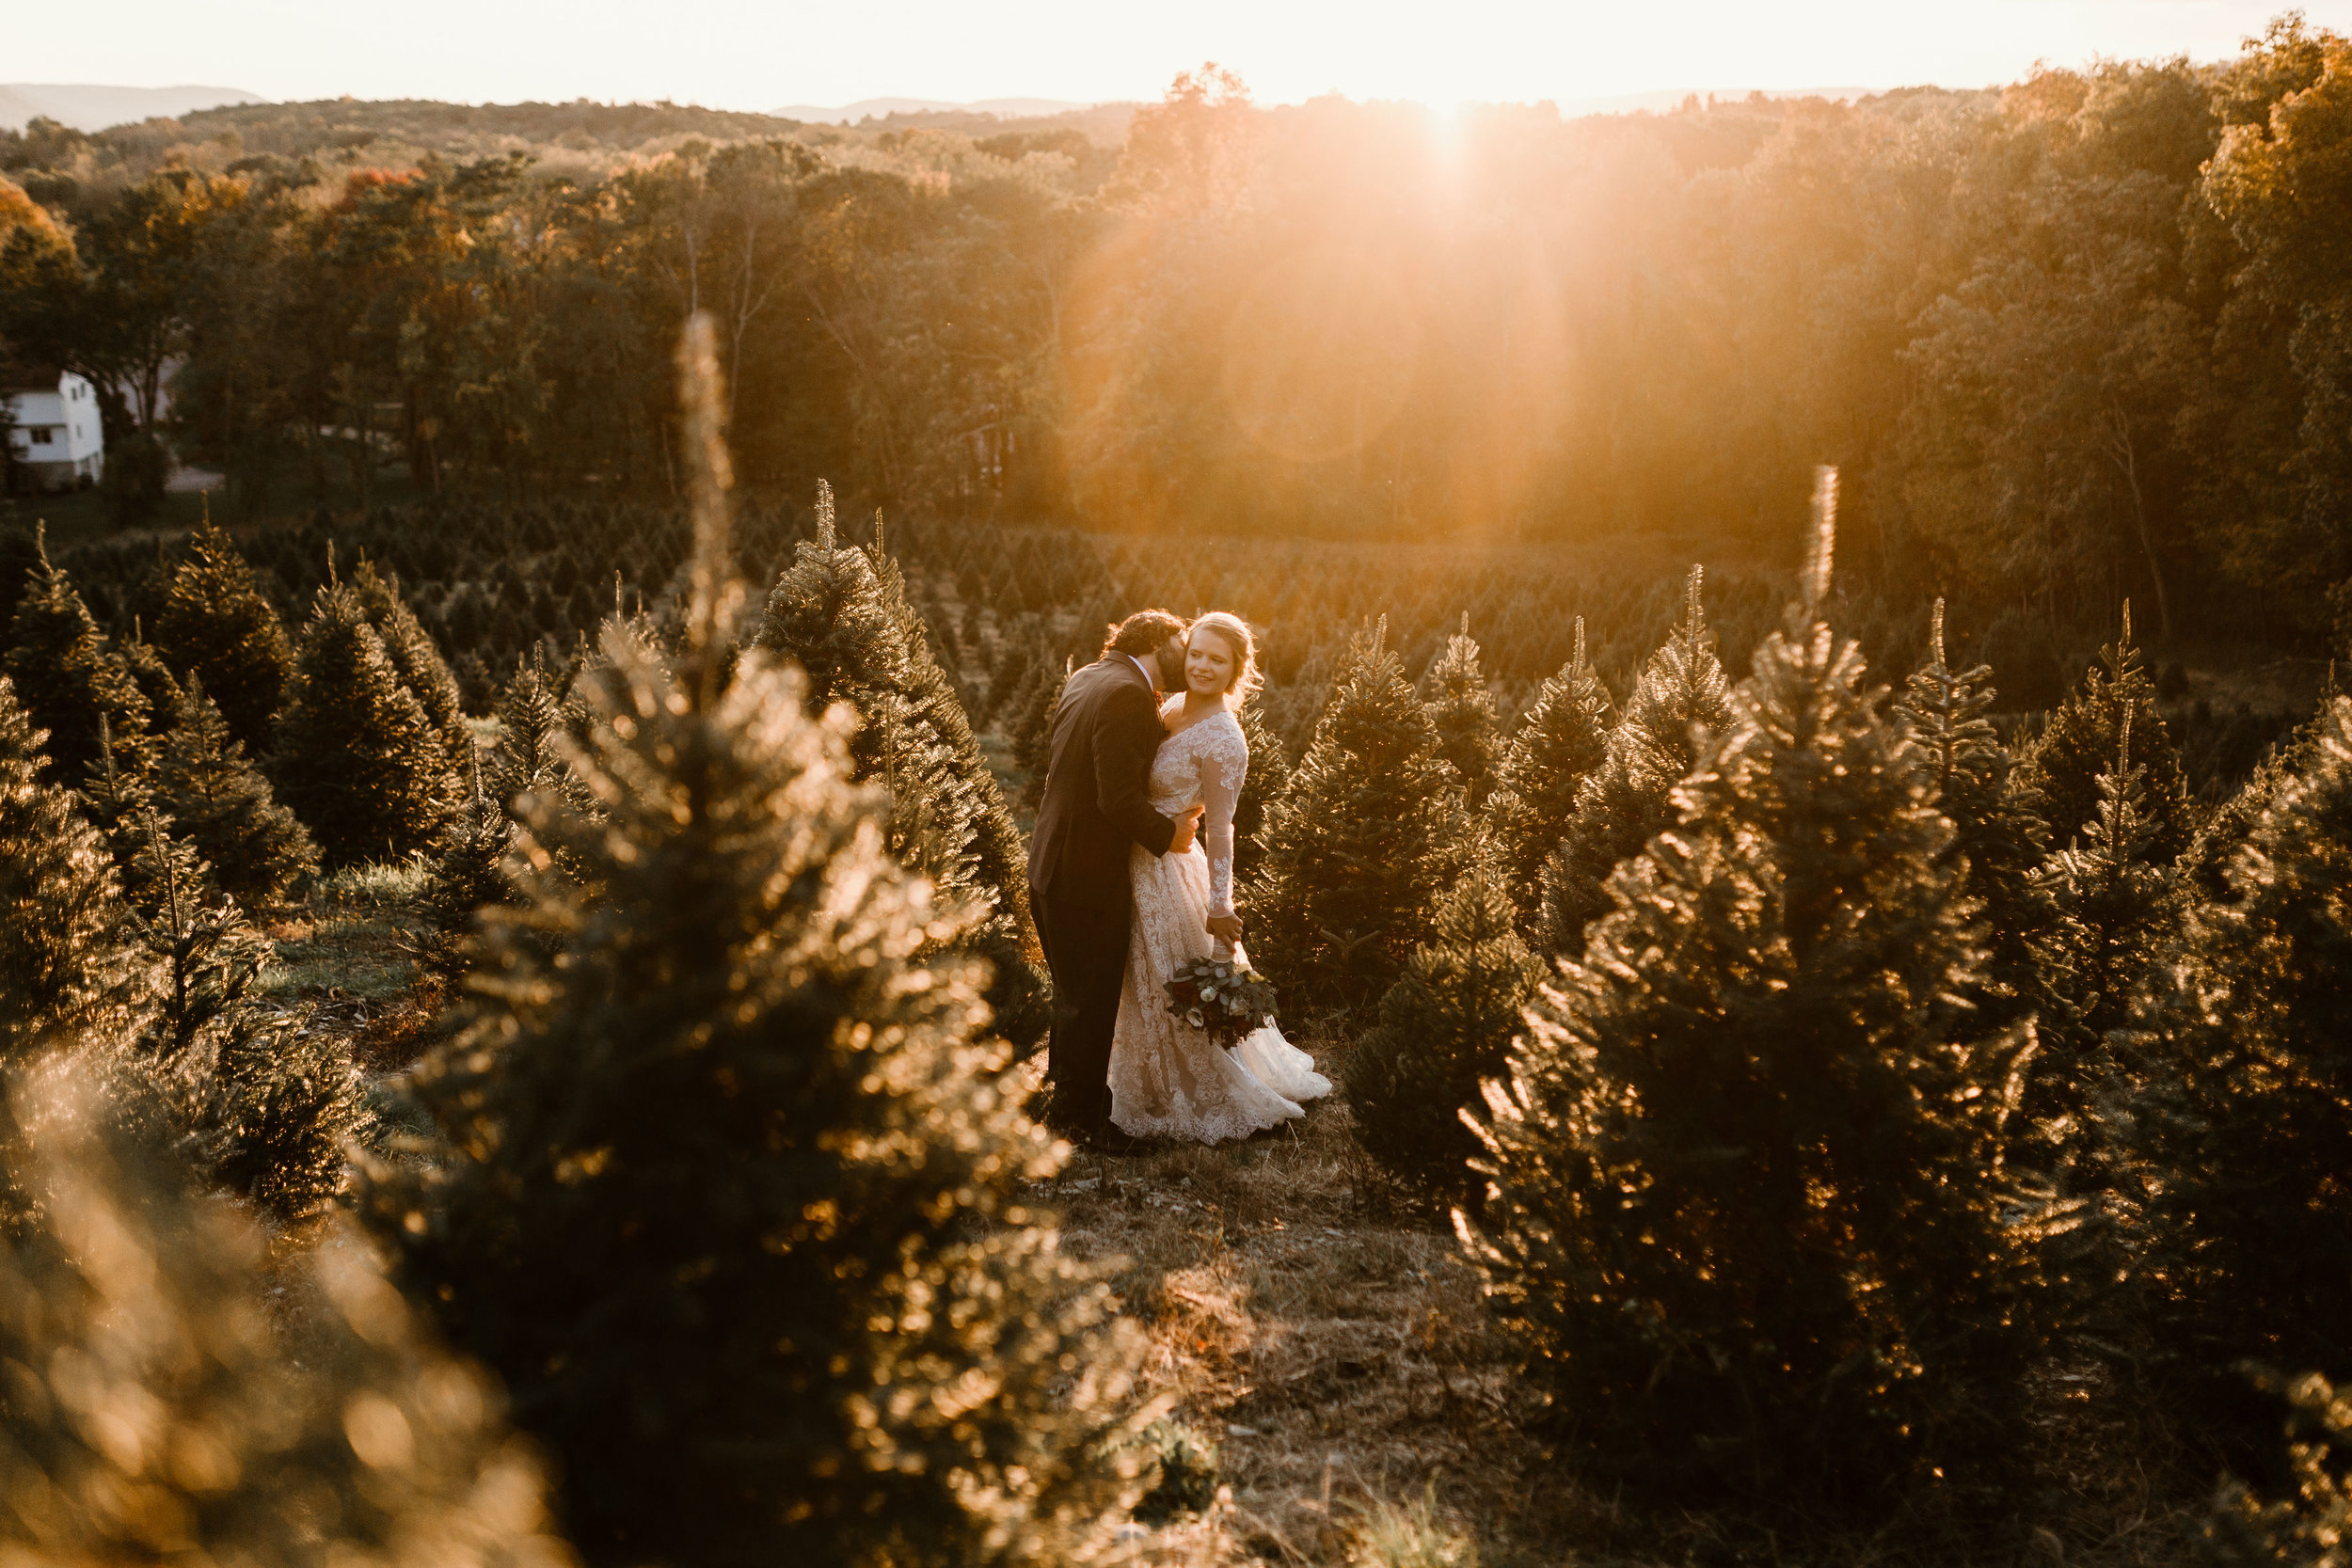 young-love-media-rustic-fall-autumn-wedding-emmerich-tree-farm-hudson-valley-warwick-new-york-first-look-345.jpg